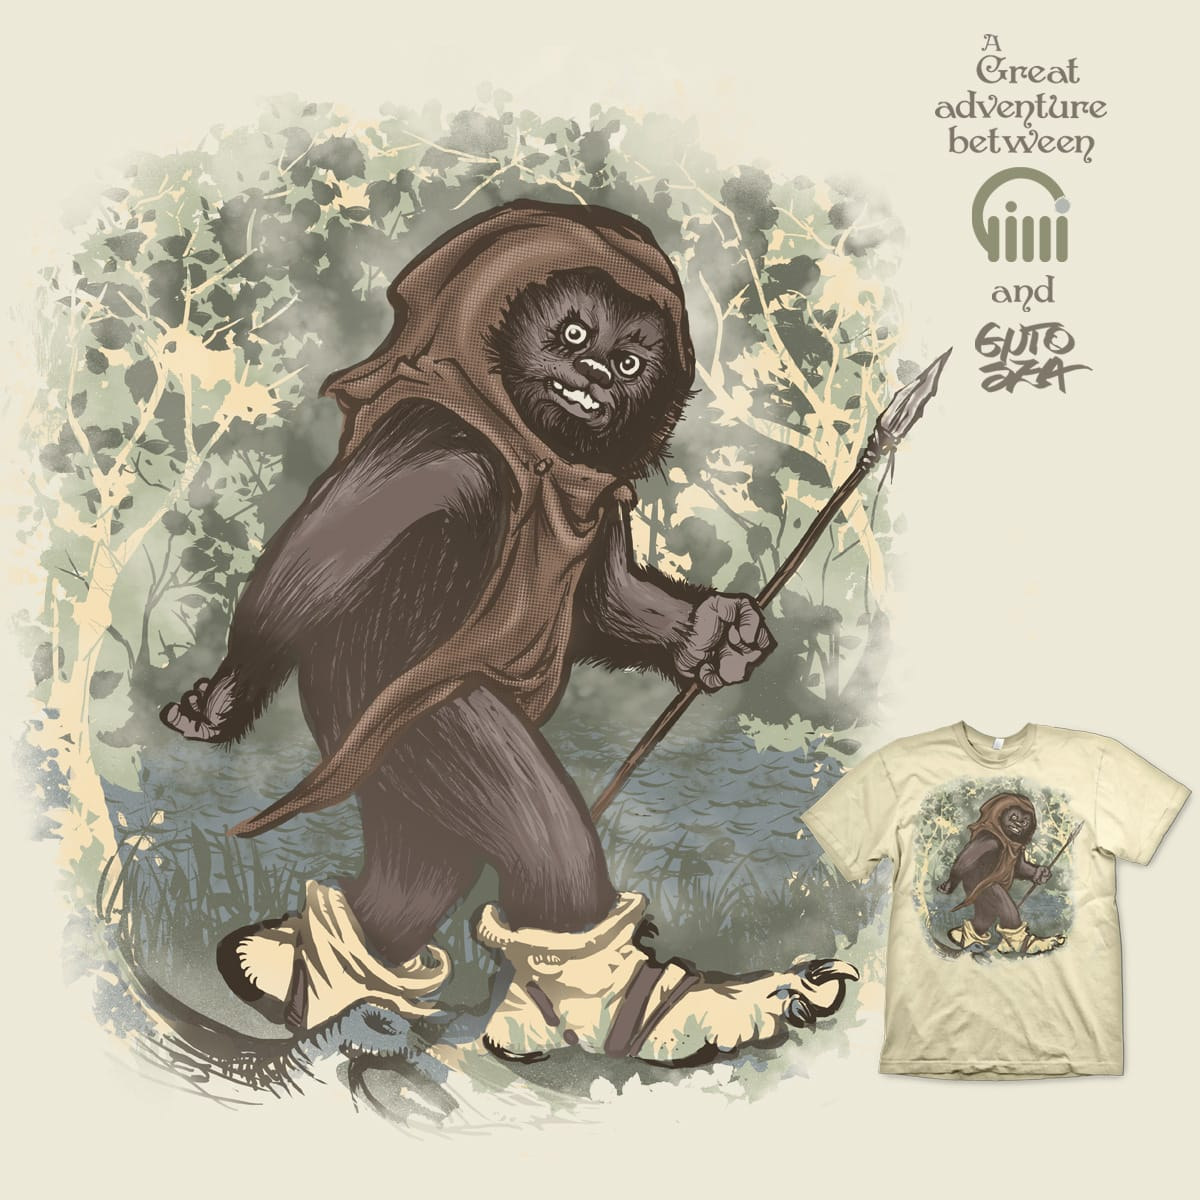 Little creature, big troll! by opippi and GUTO_SZA on Threadless